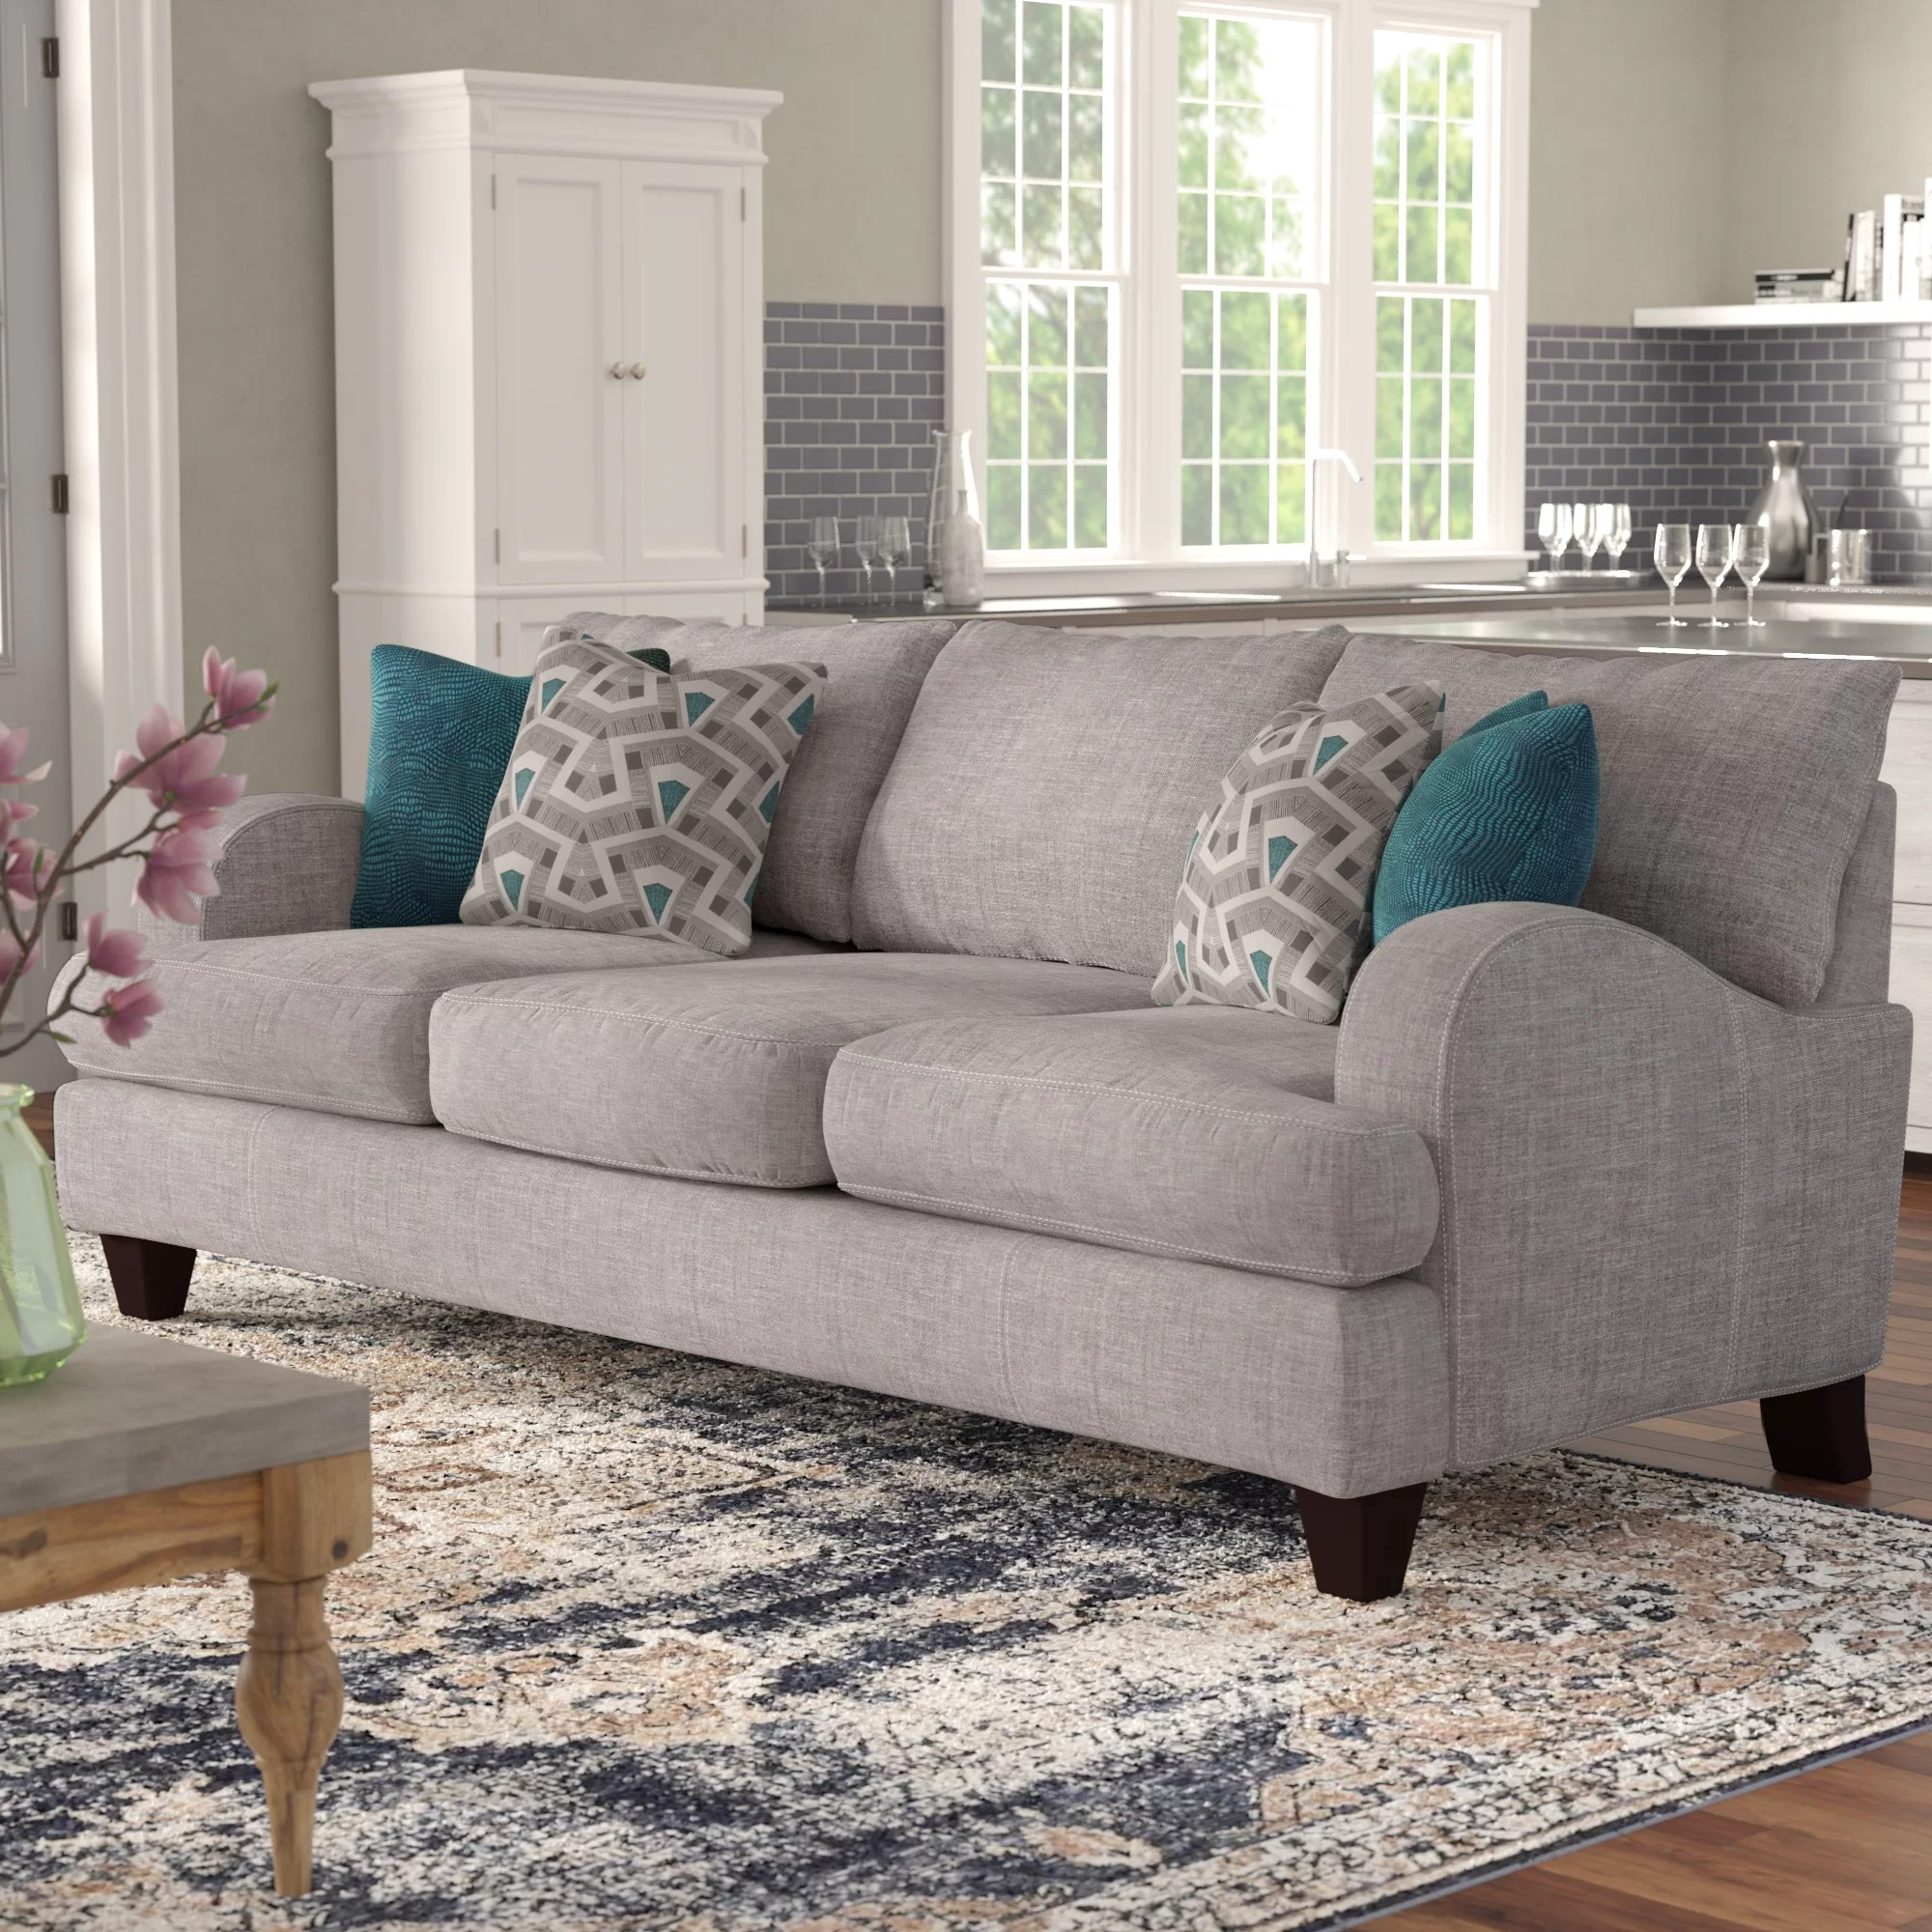 Sofa Entertainment Group Llc Laurel Foundry Modern Farmhouse Rosalie Sofa Reviews Wayfair